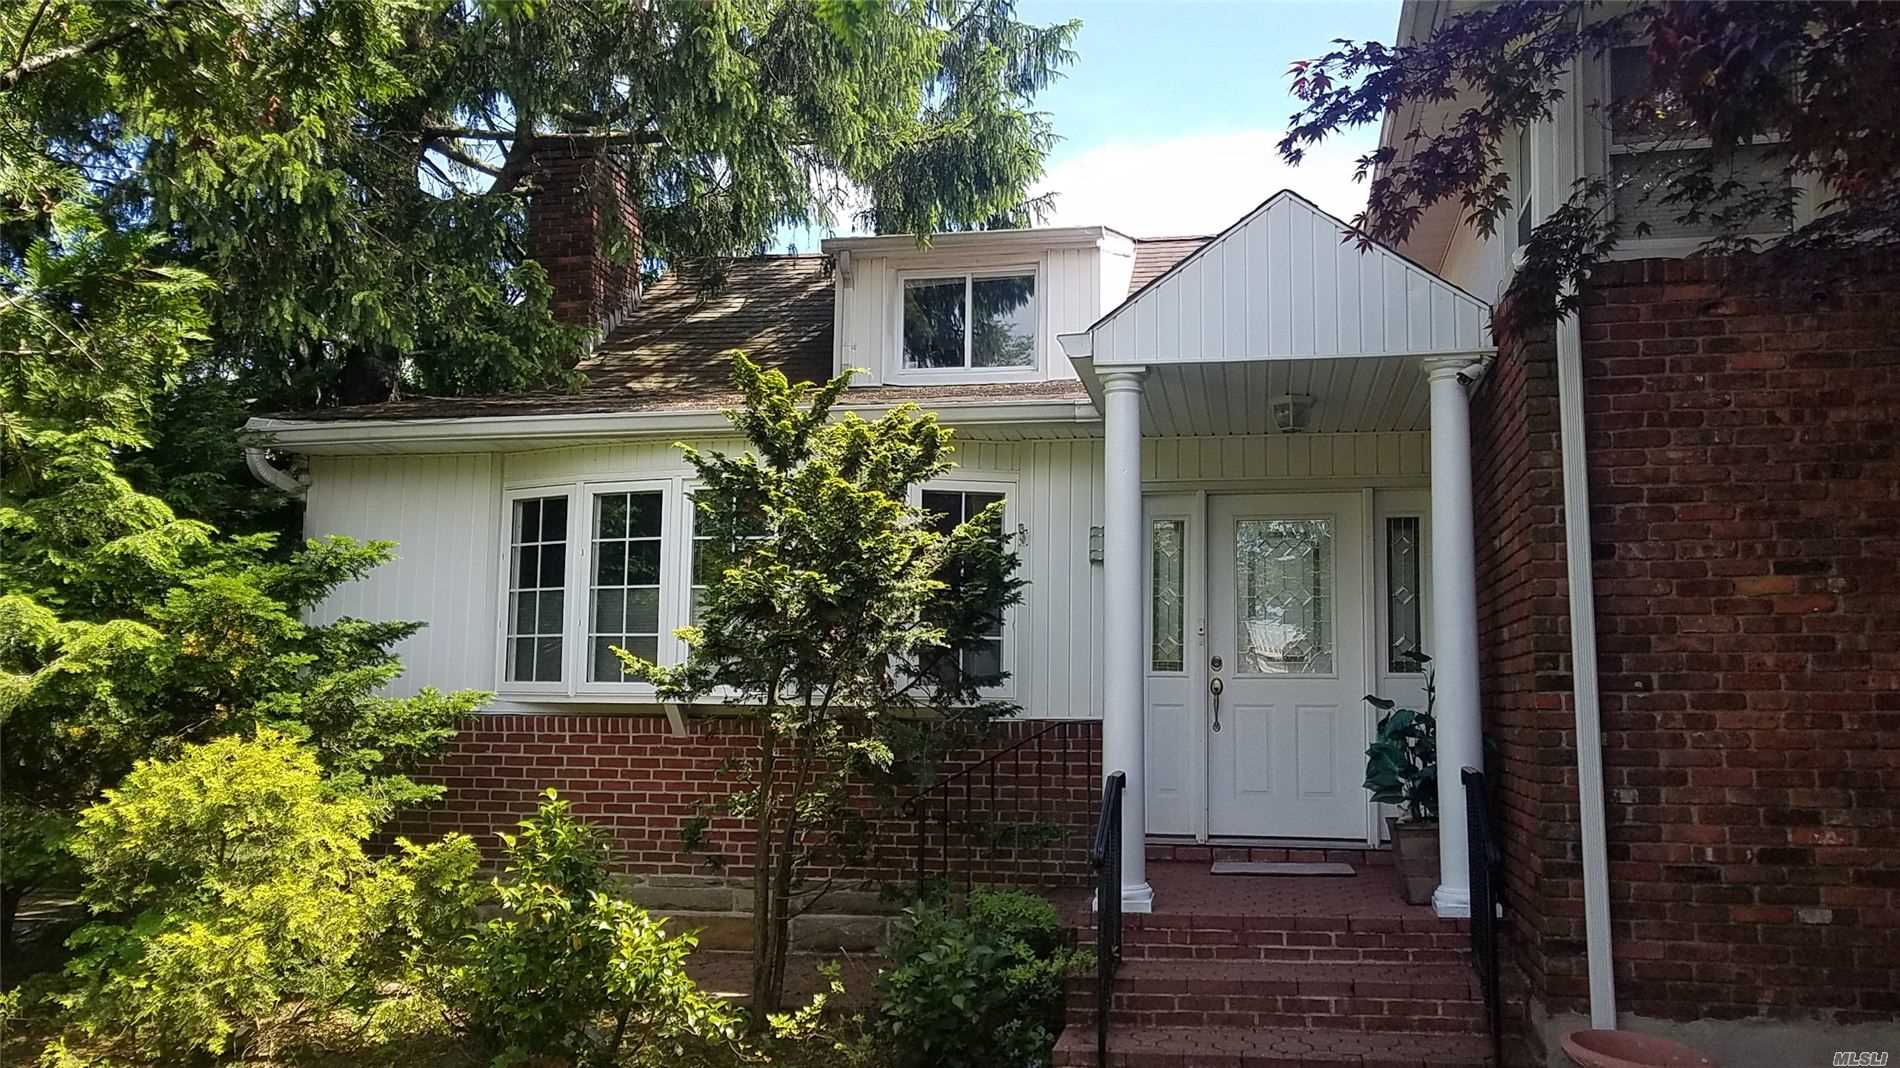 large split level W/CAC on an oversized property with plenty of privacy. Double sized living rm w/ marble fireplace. Plush carpeting throughout & oak floors underneath. Formal dining room, eat in kitchen with granite floors. Large master suite with fullbth w/ jacuzzi tub. Three more bedrooms and full bath.Den with full bath. Partially finished basement. 2car attached garage W/3 car driveway. 200amp elc , cameras around can see house from any where around the world with a nice. low taxes.